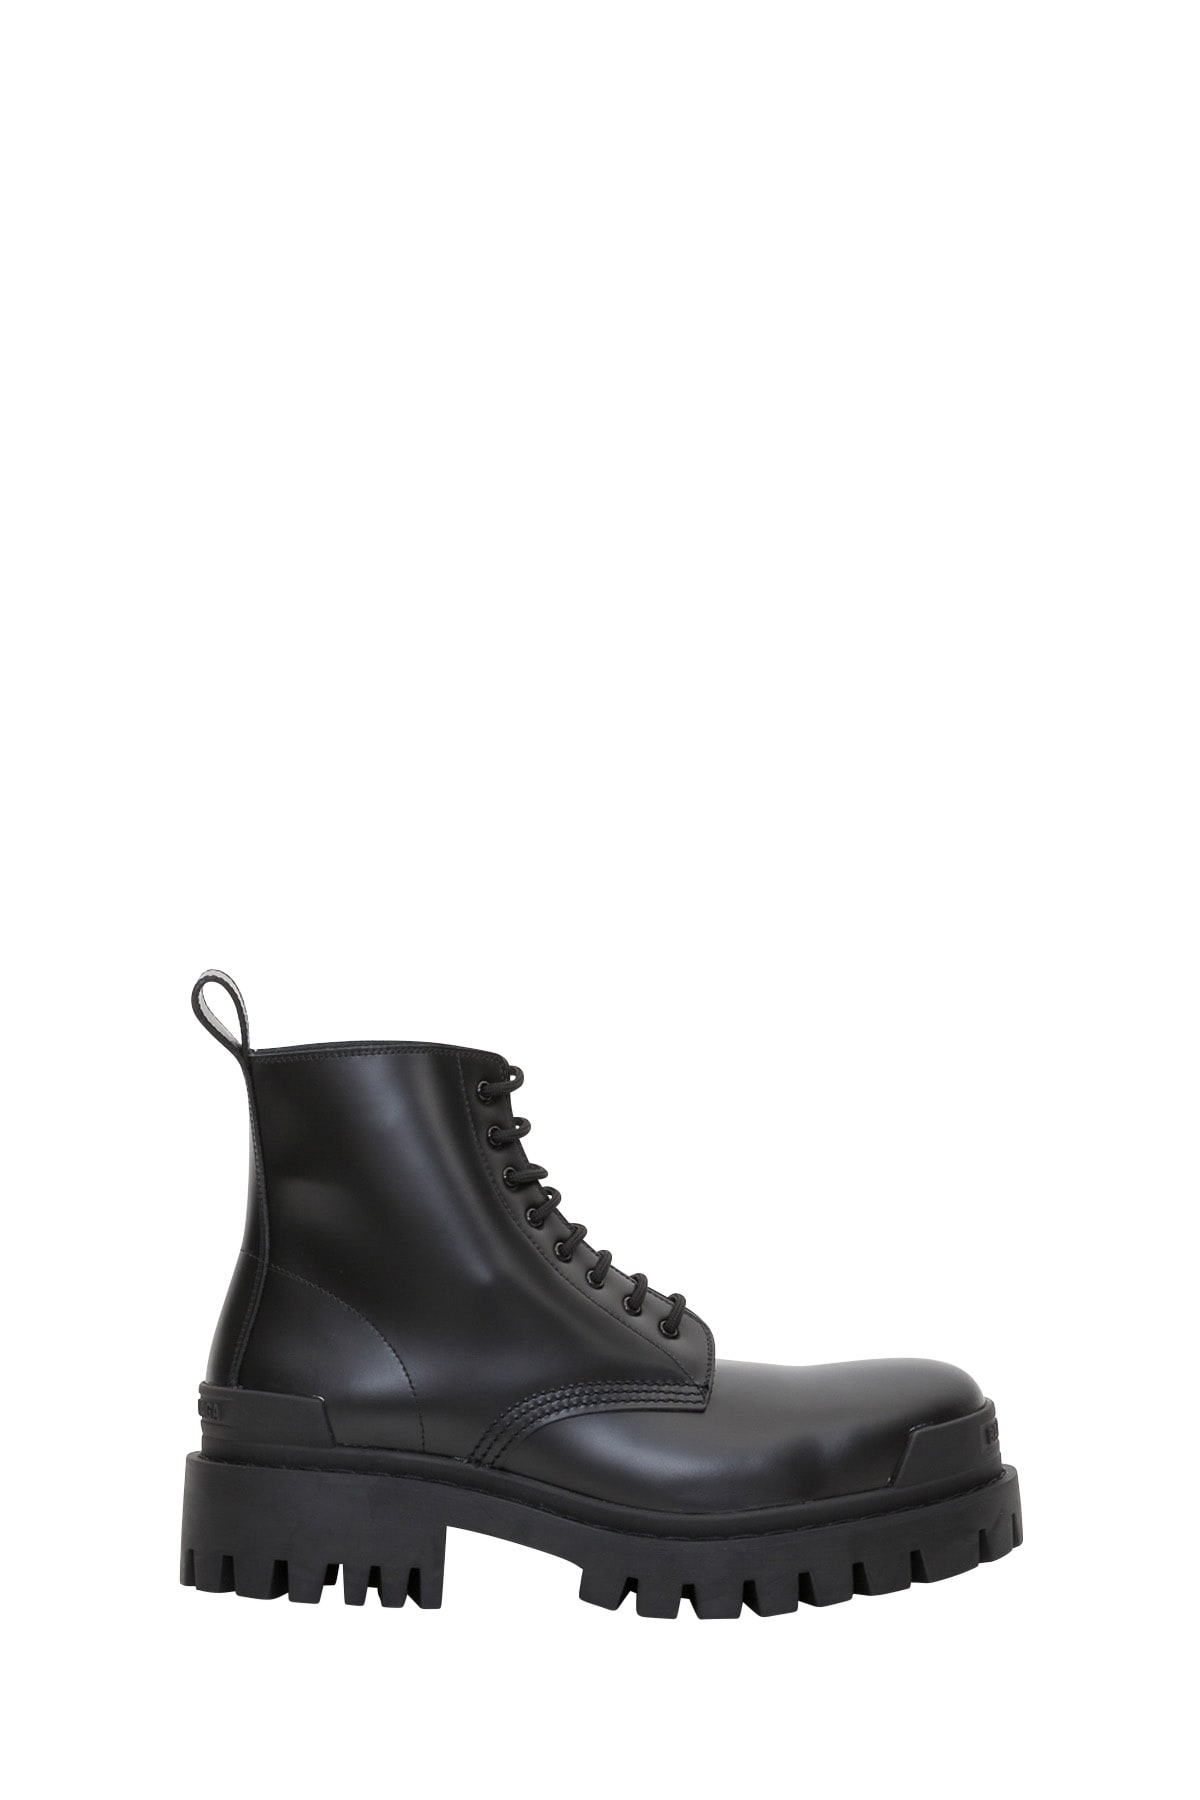 Balenciaga Boots LEATHER BOOTS RUBBER SOLE